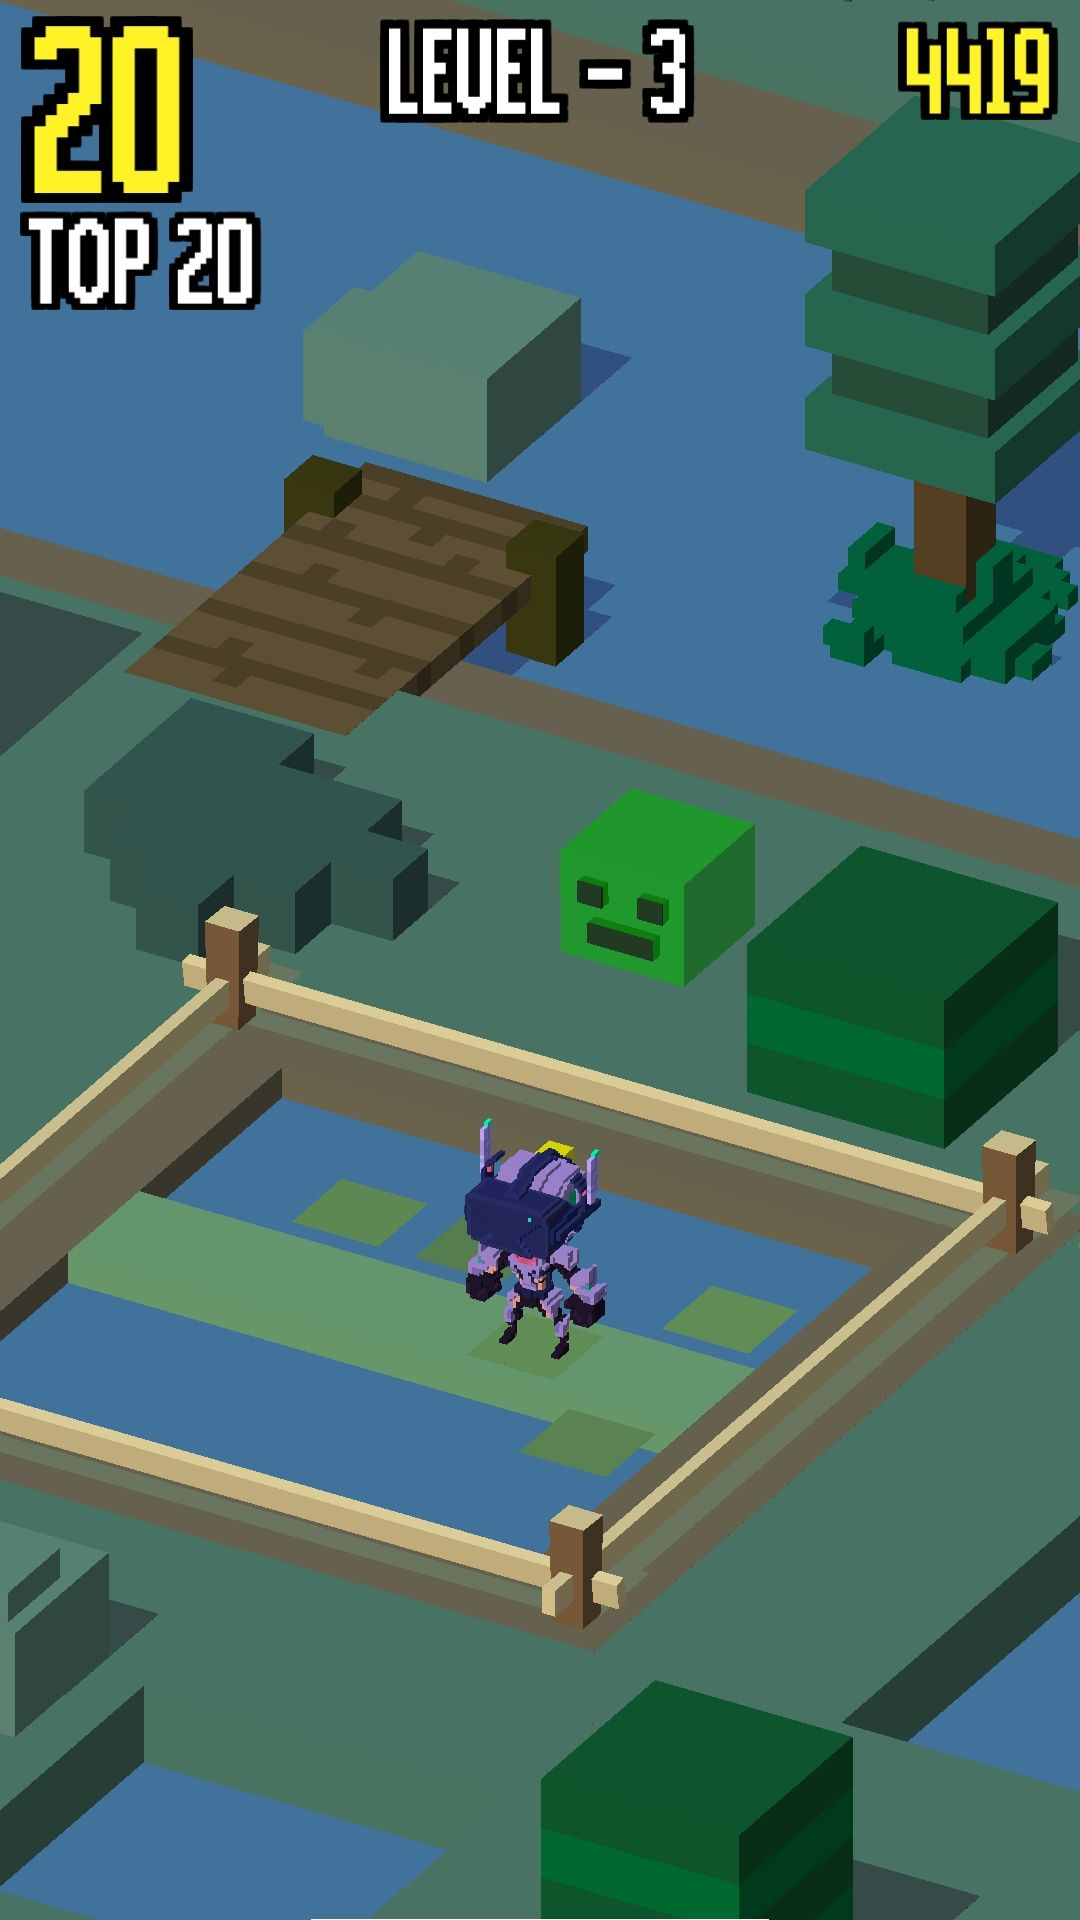 Falling Mystery - Complete Unity Project Screenshot 40